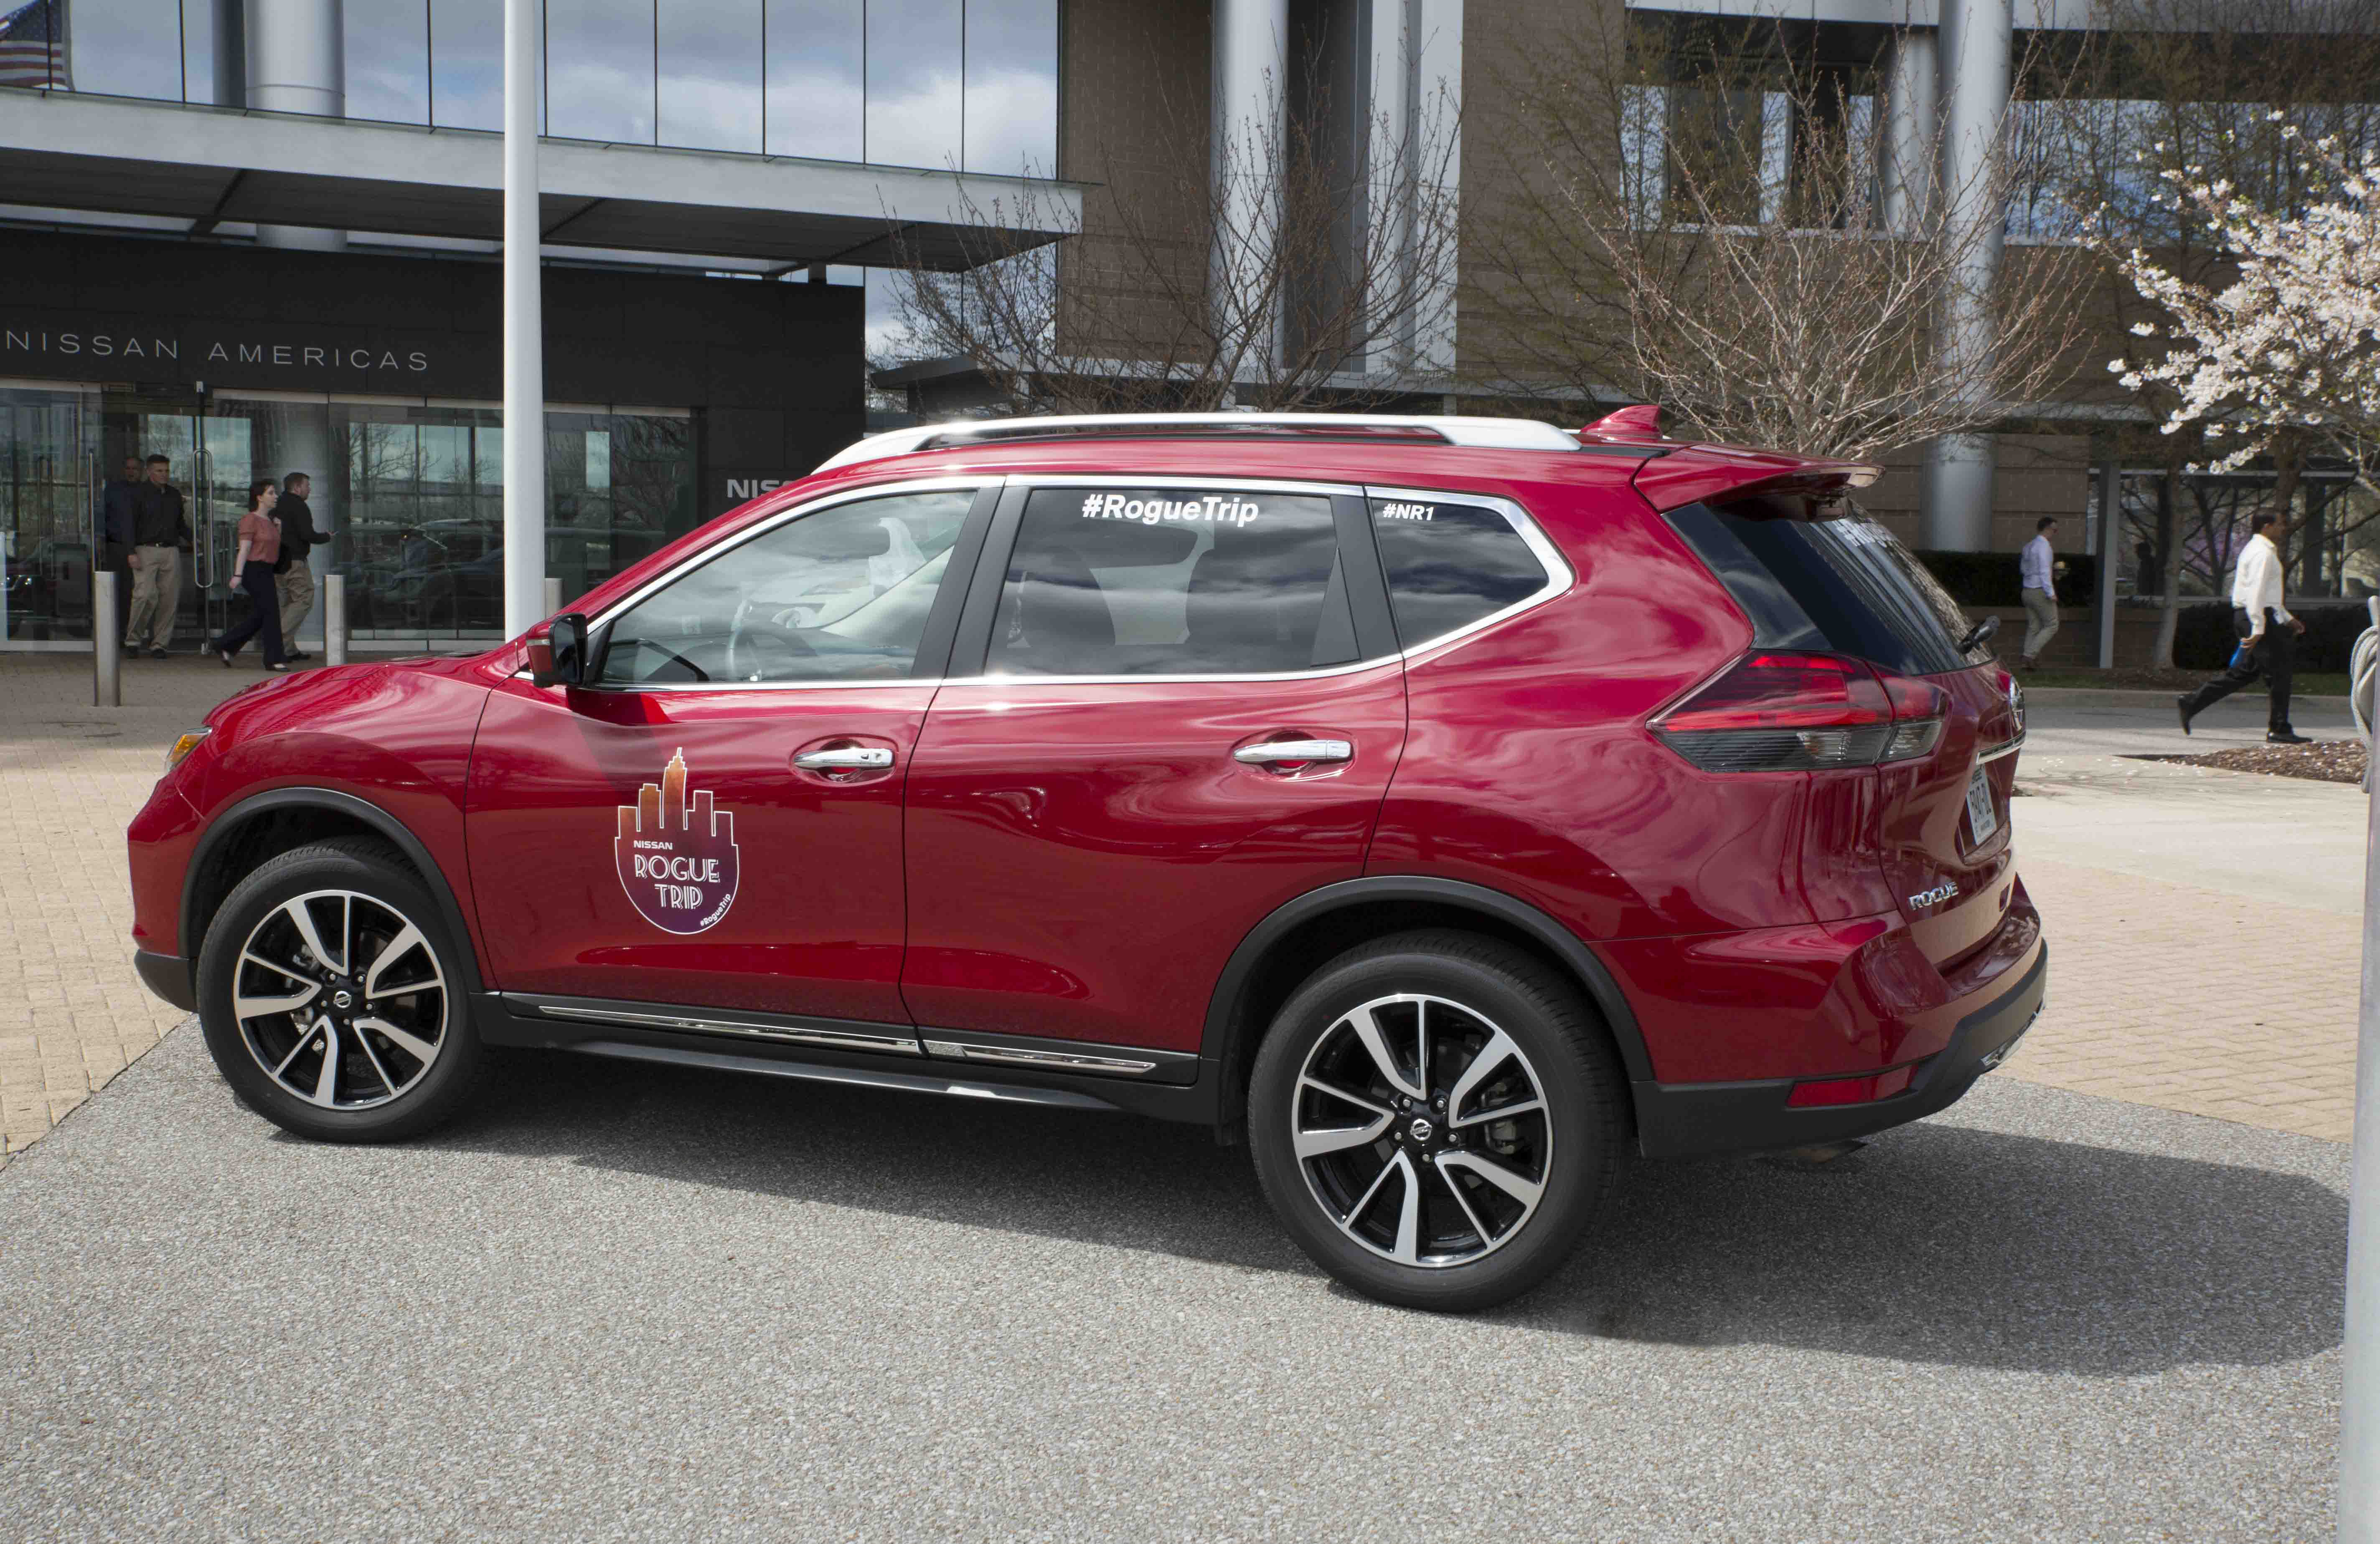 nissan rogue trip teams set sights on 2017 new york international auto show for charities of. Black Bedroom Furniture Sets. Home Design Ideas